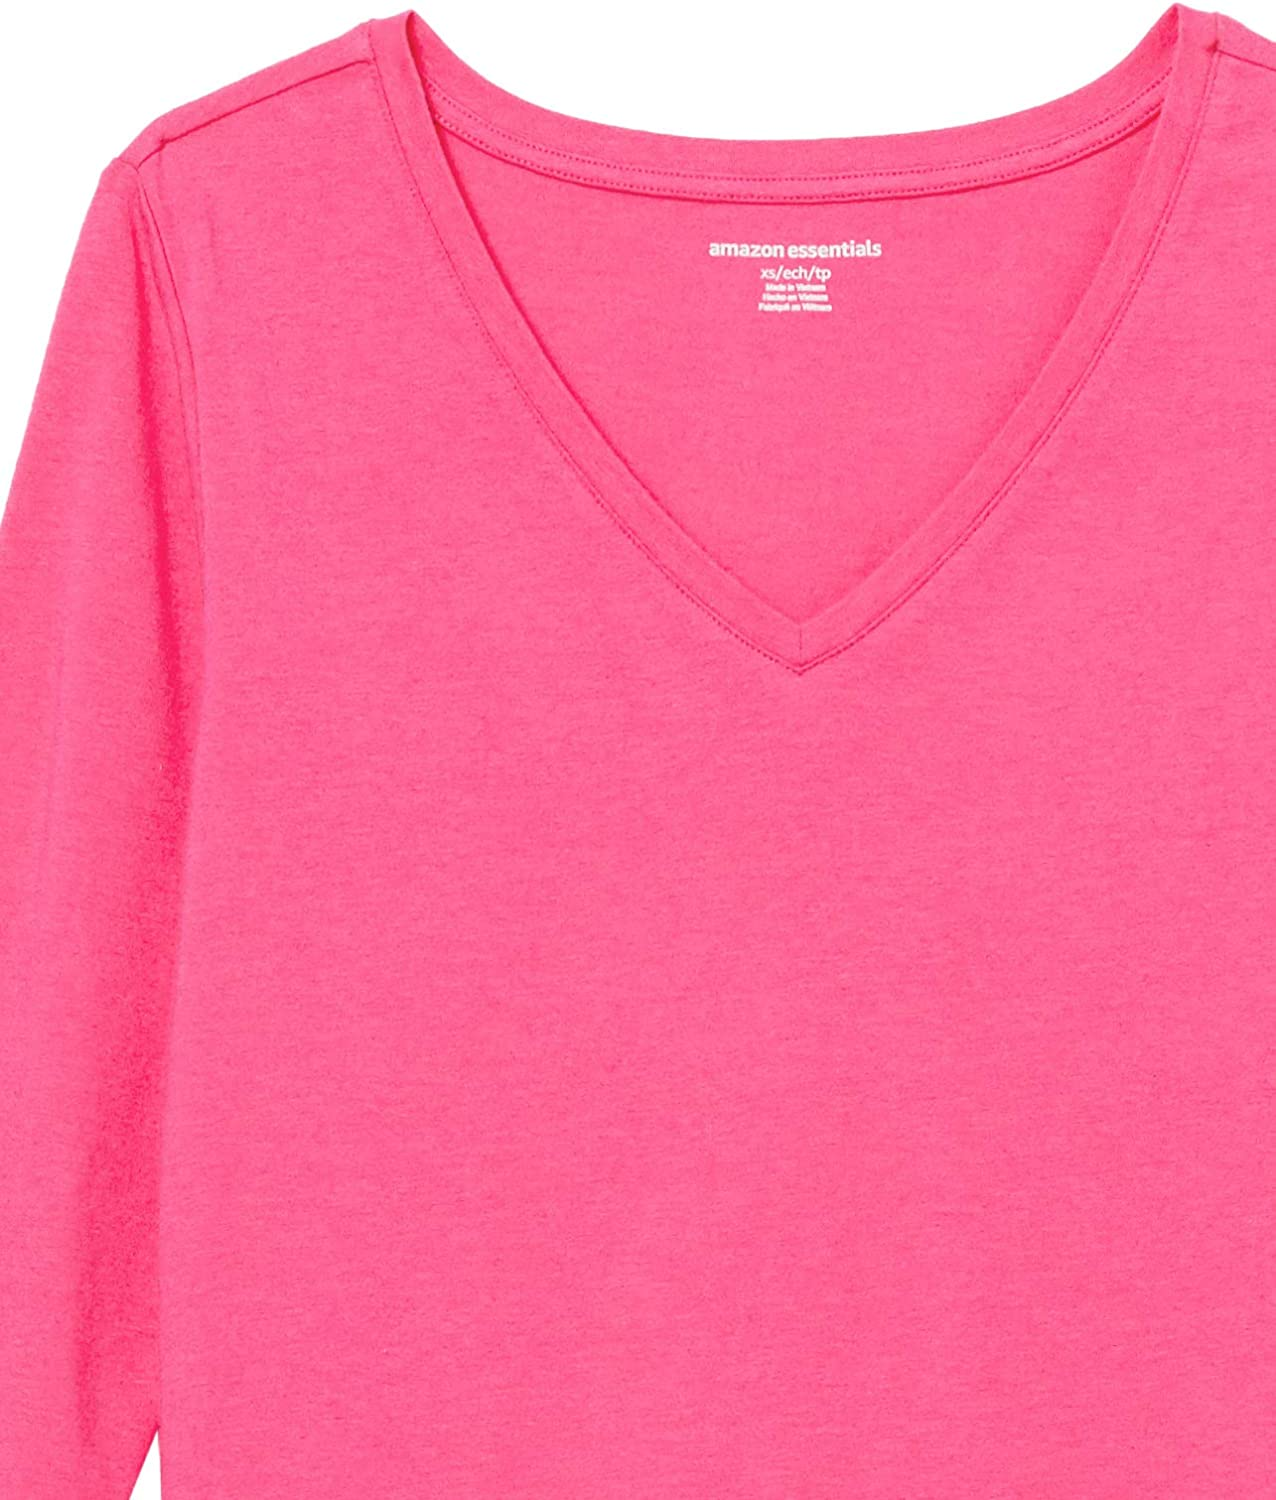 Essentials Women's Classic-Fit 3/4 Sleeve V-Neck T-Shirt: Clothing